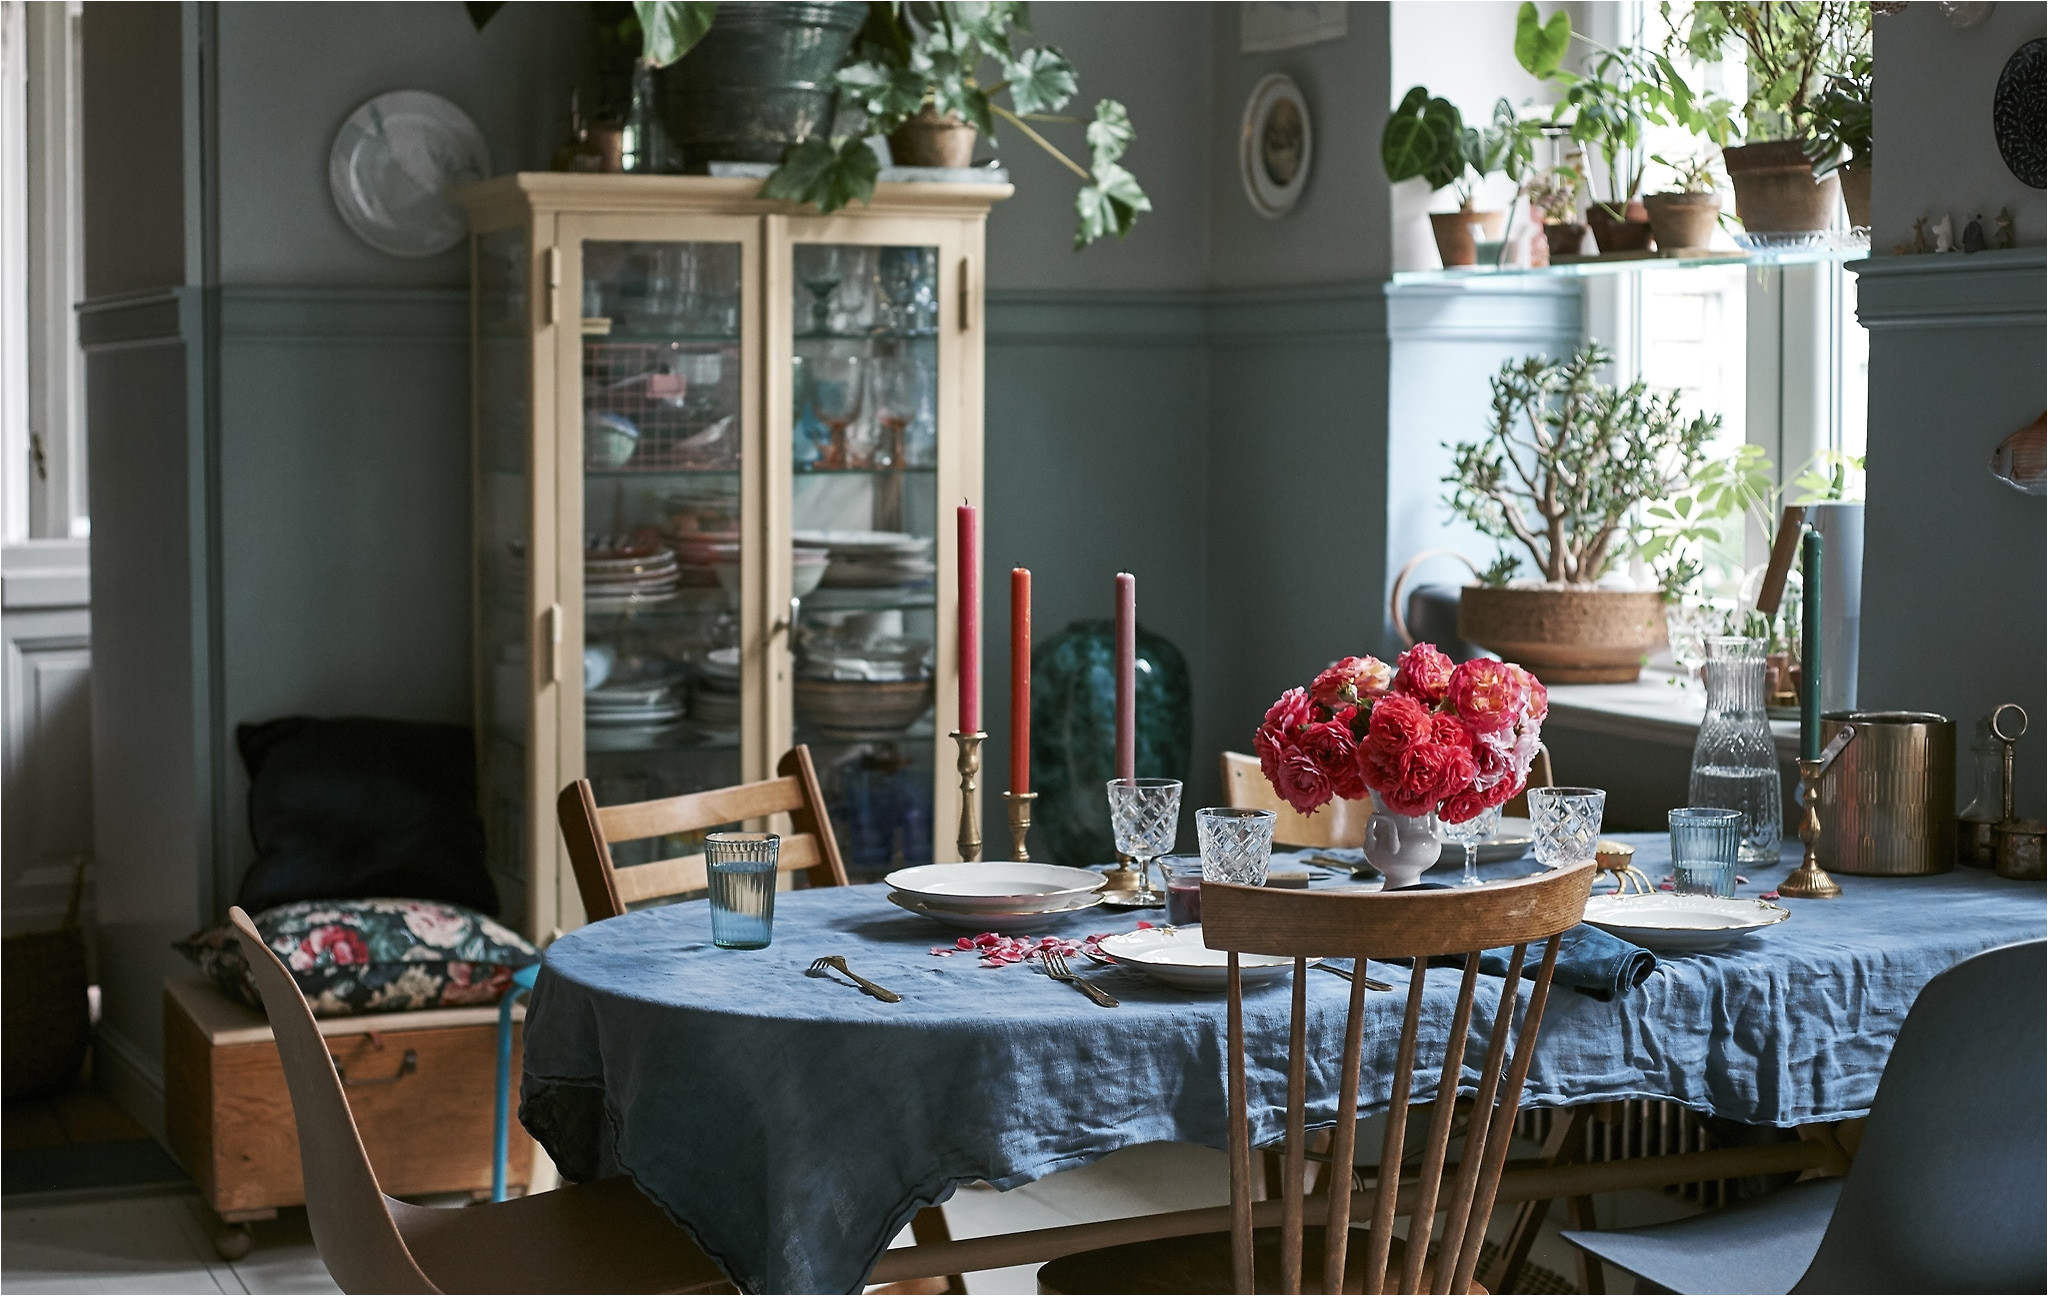 create a colourful floral table setting for a vintage inspired dining room